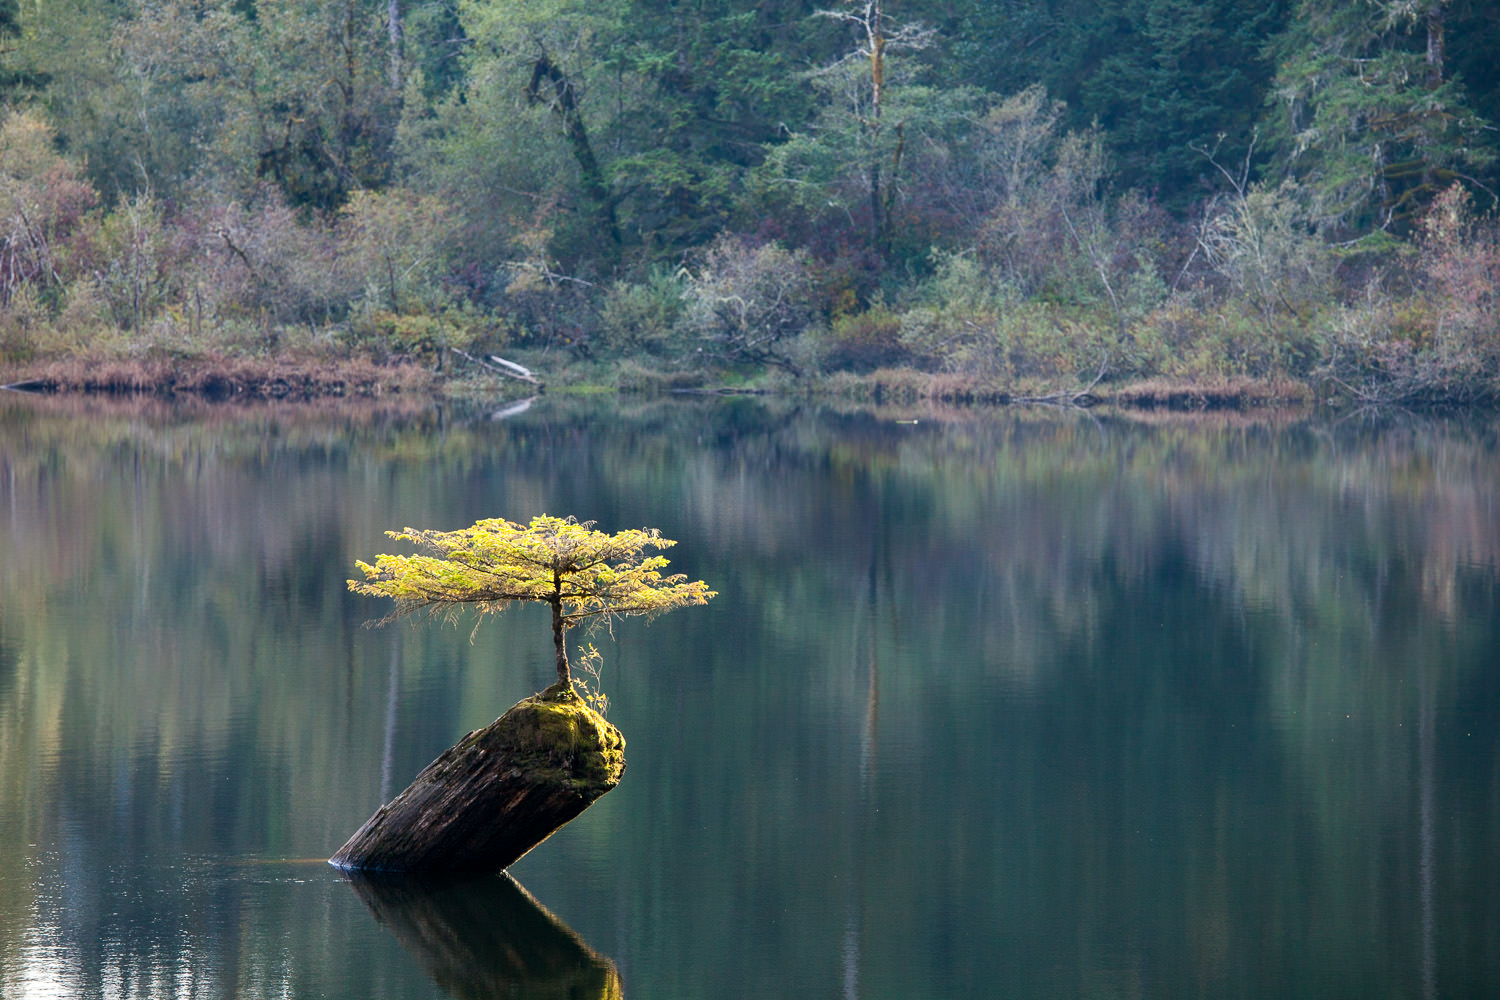 fairy-lake-bonsai-tree-on-log.jpg